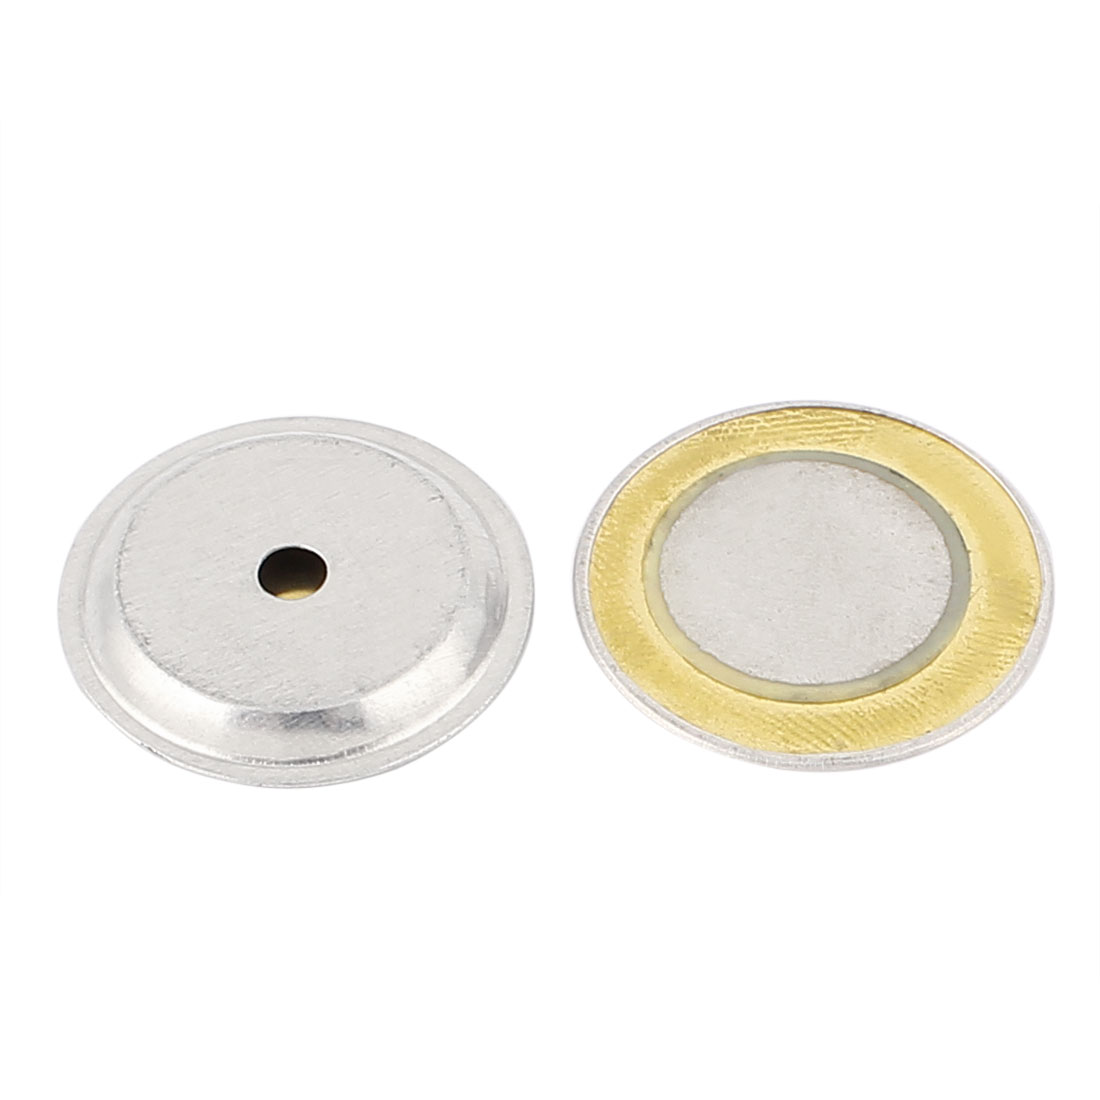 2pcs 27mm Piezo Elements Sounder Sensor Trigger Drum Disc DC 24V